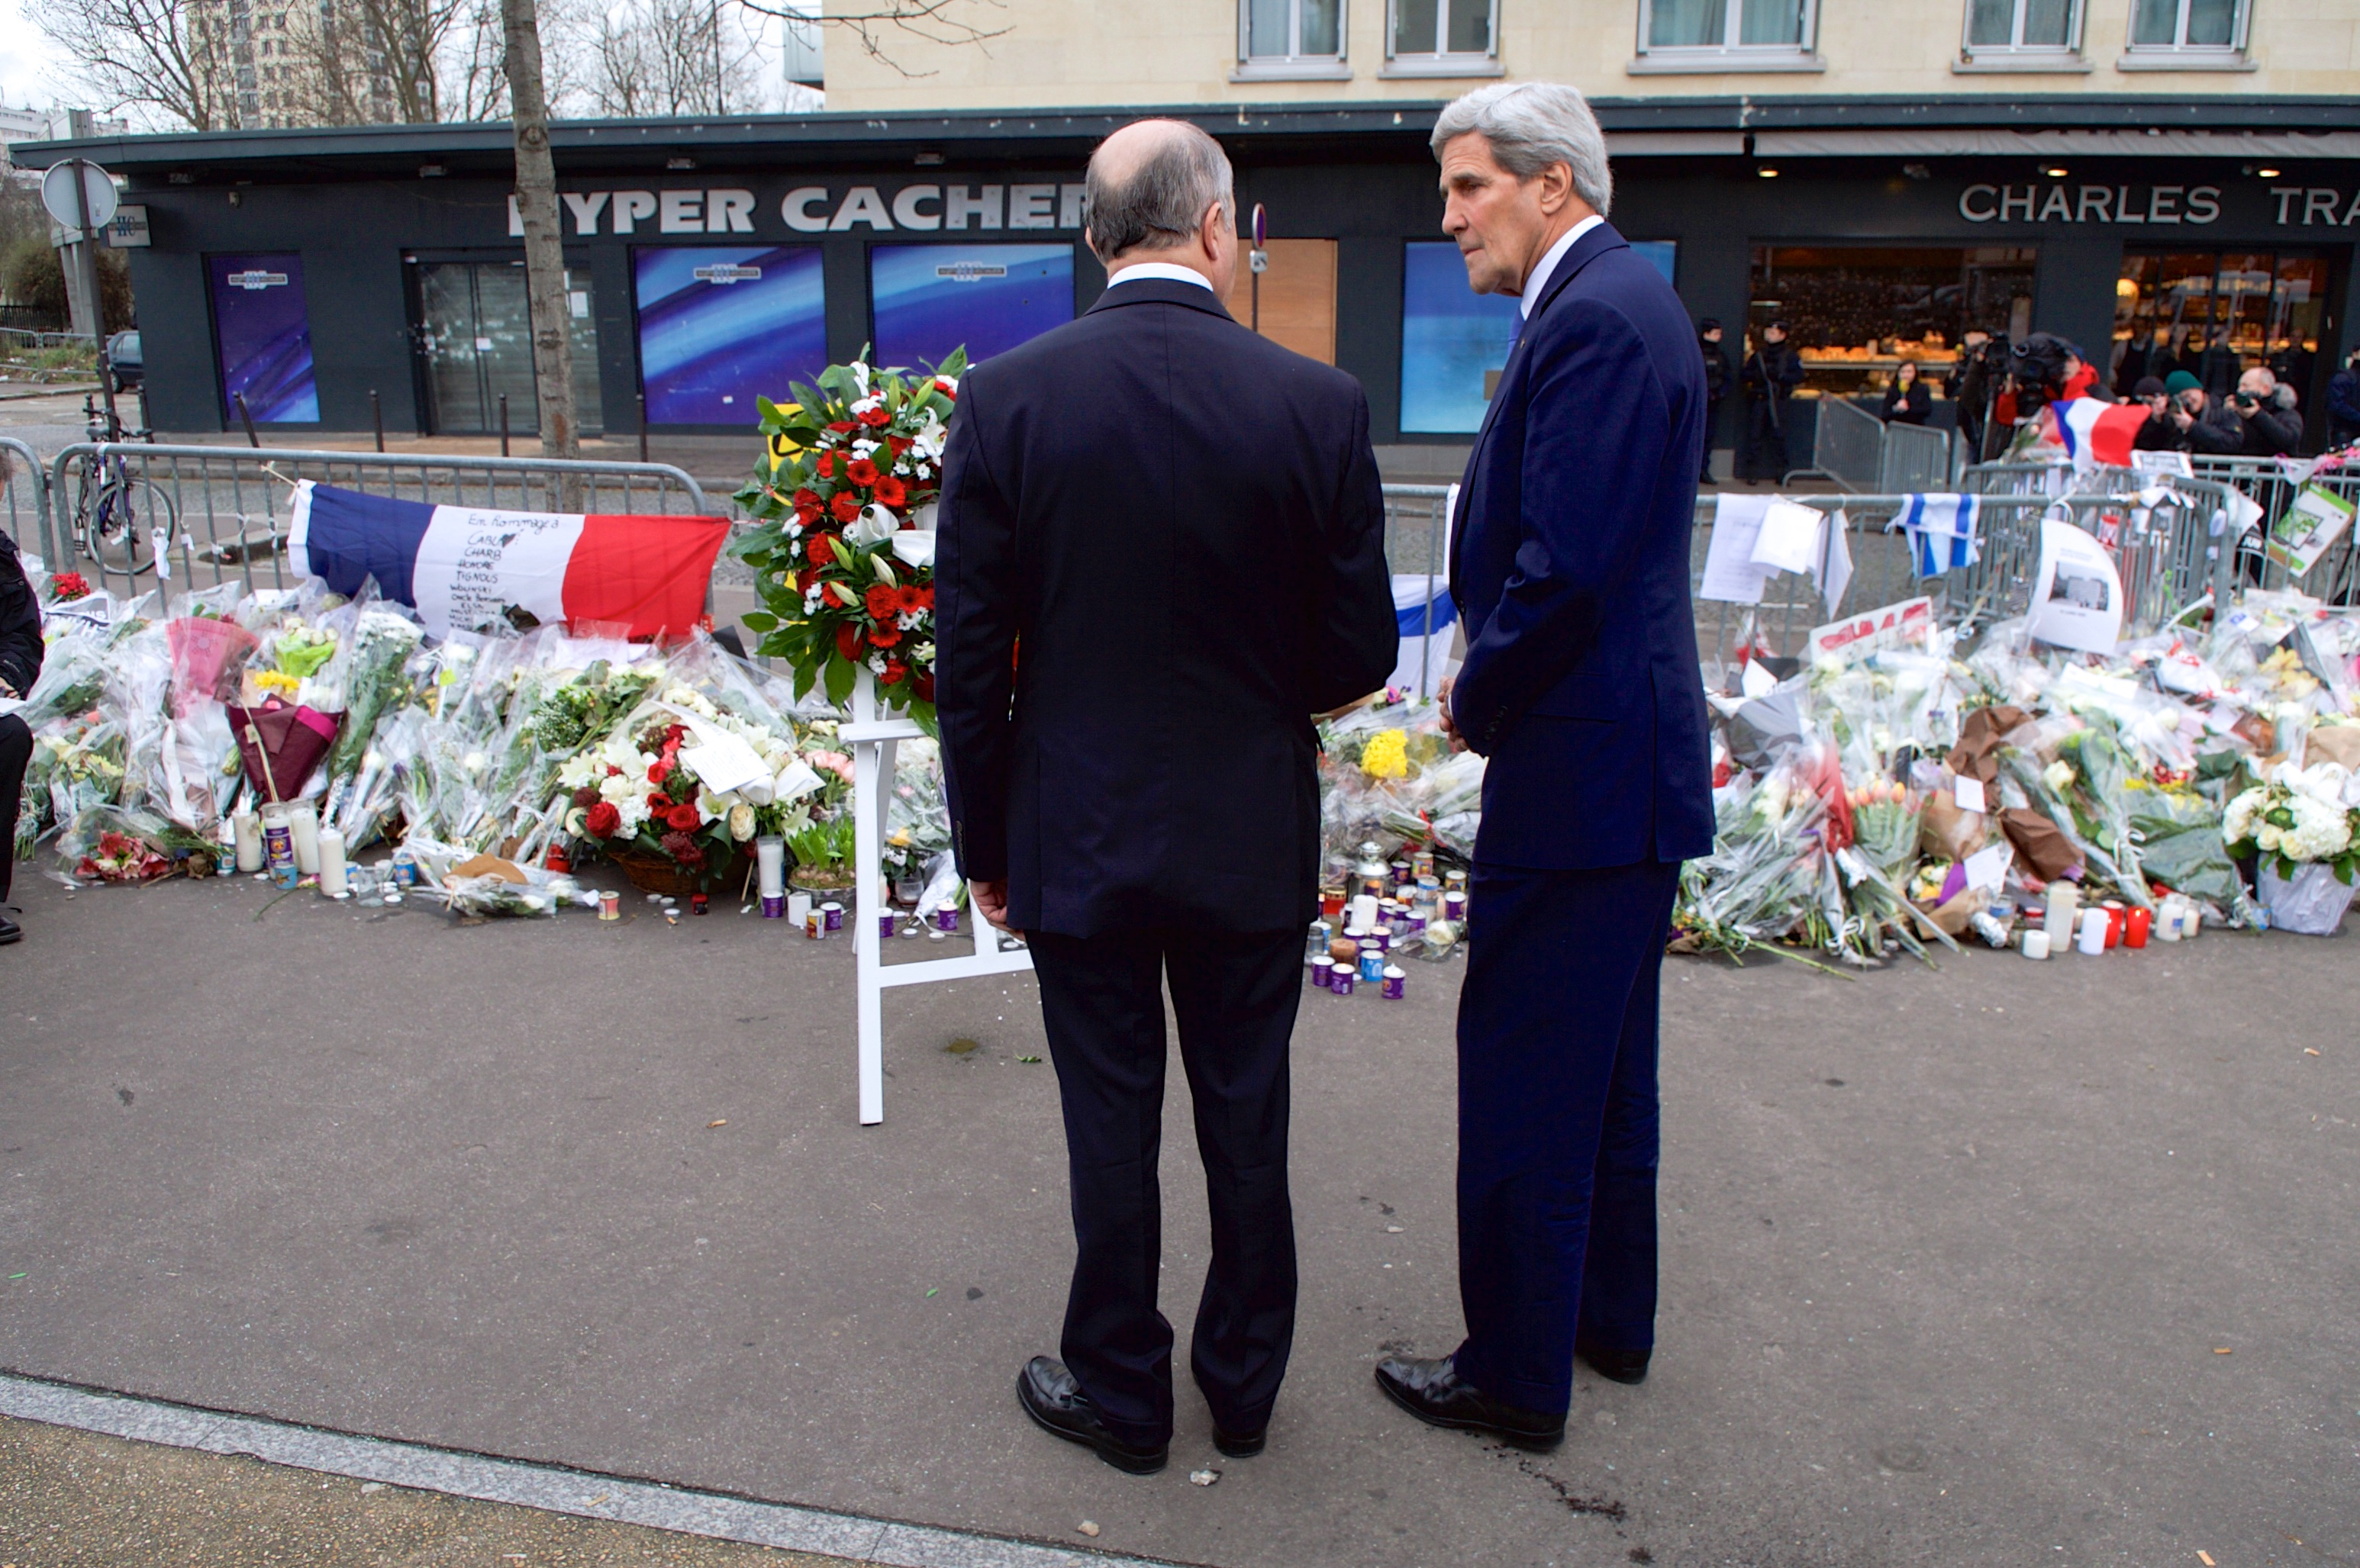 File:Secretary Kerry and French Foreign Minister Fabius Look